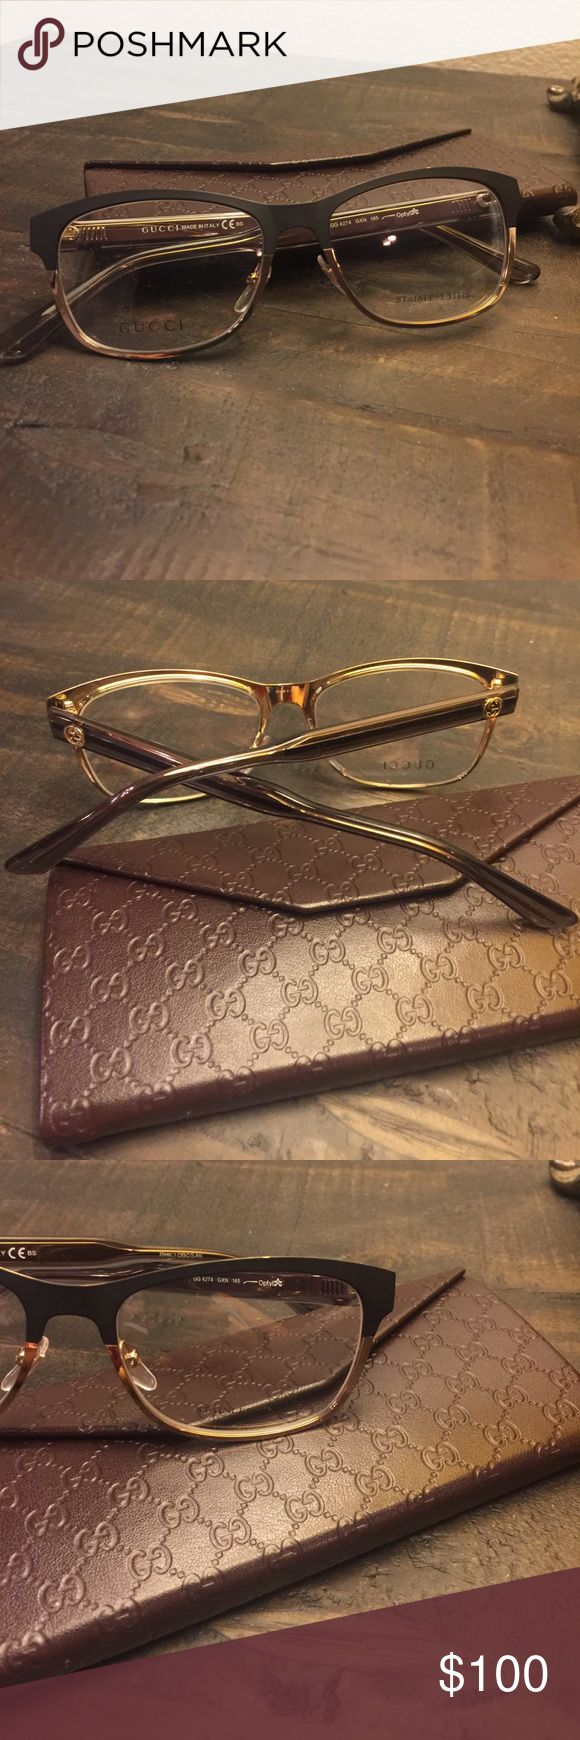 Gucci Eyeglasses Brand new Gucci eyeglass frame. GG 4274 color code GXN. Made in Italy. Small scratch on front of one side. Shown in photo. Comes with gucci case Gucci Accessories Glasses